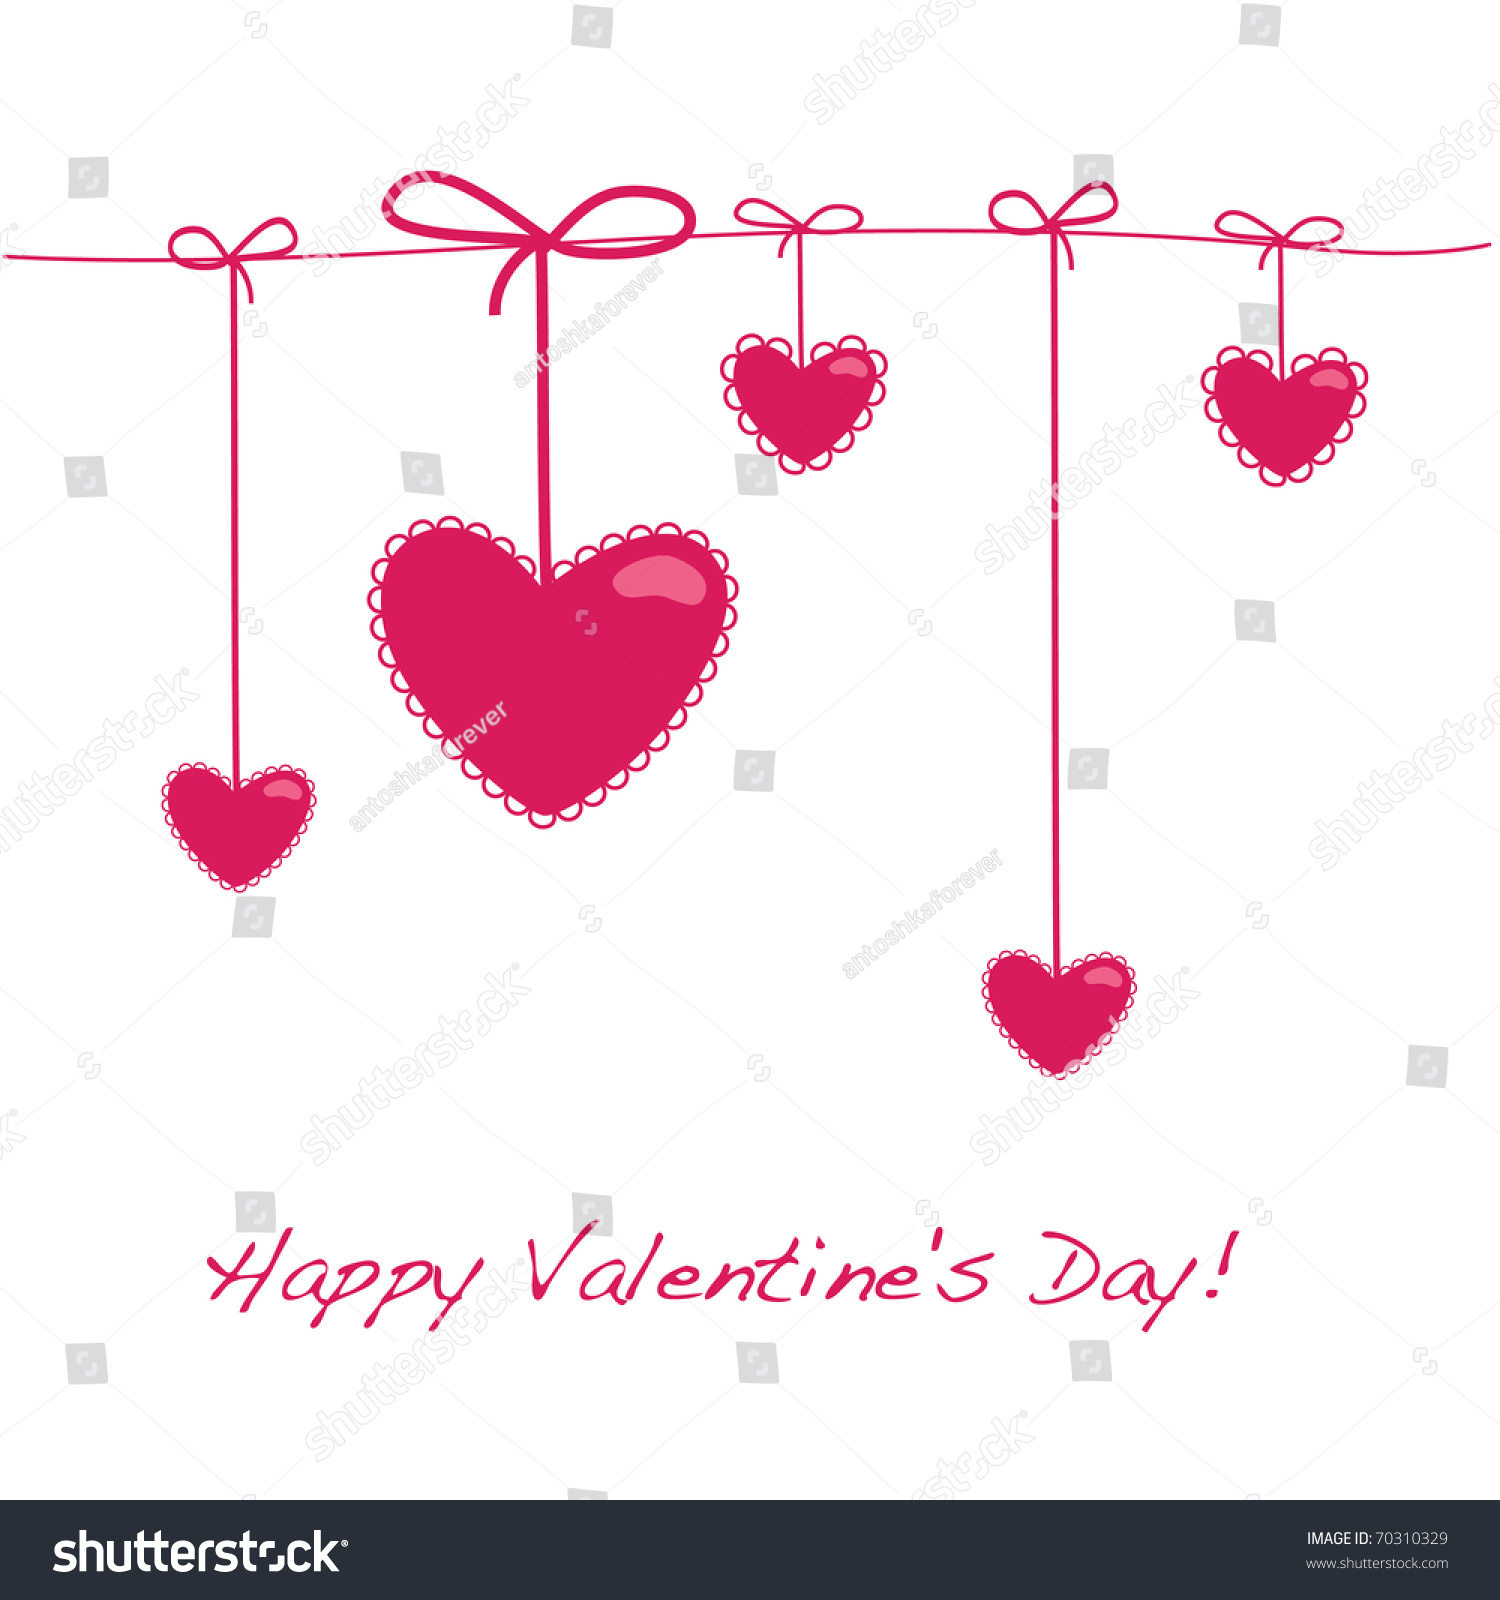 Card Layout Valentines Day 5 Hearts Vector 70310329 – Valentine Card Layouts